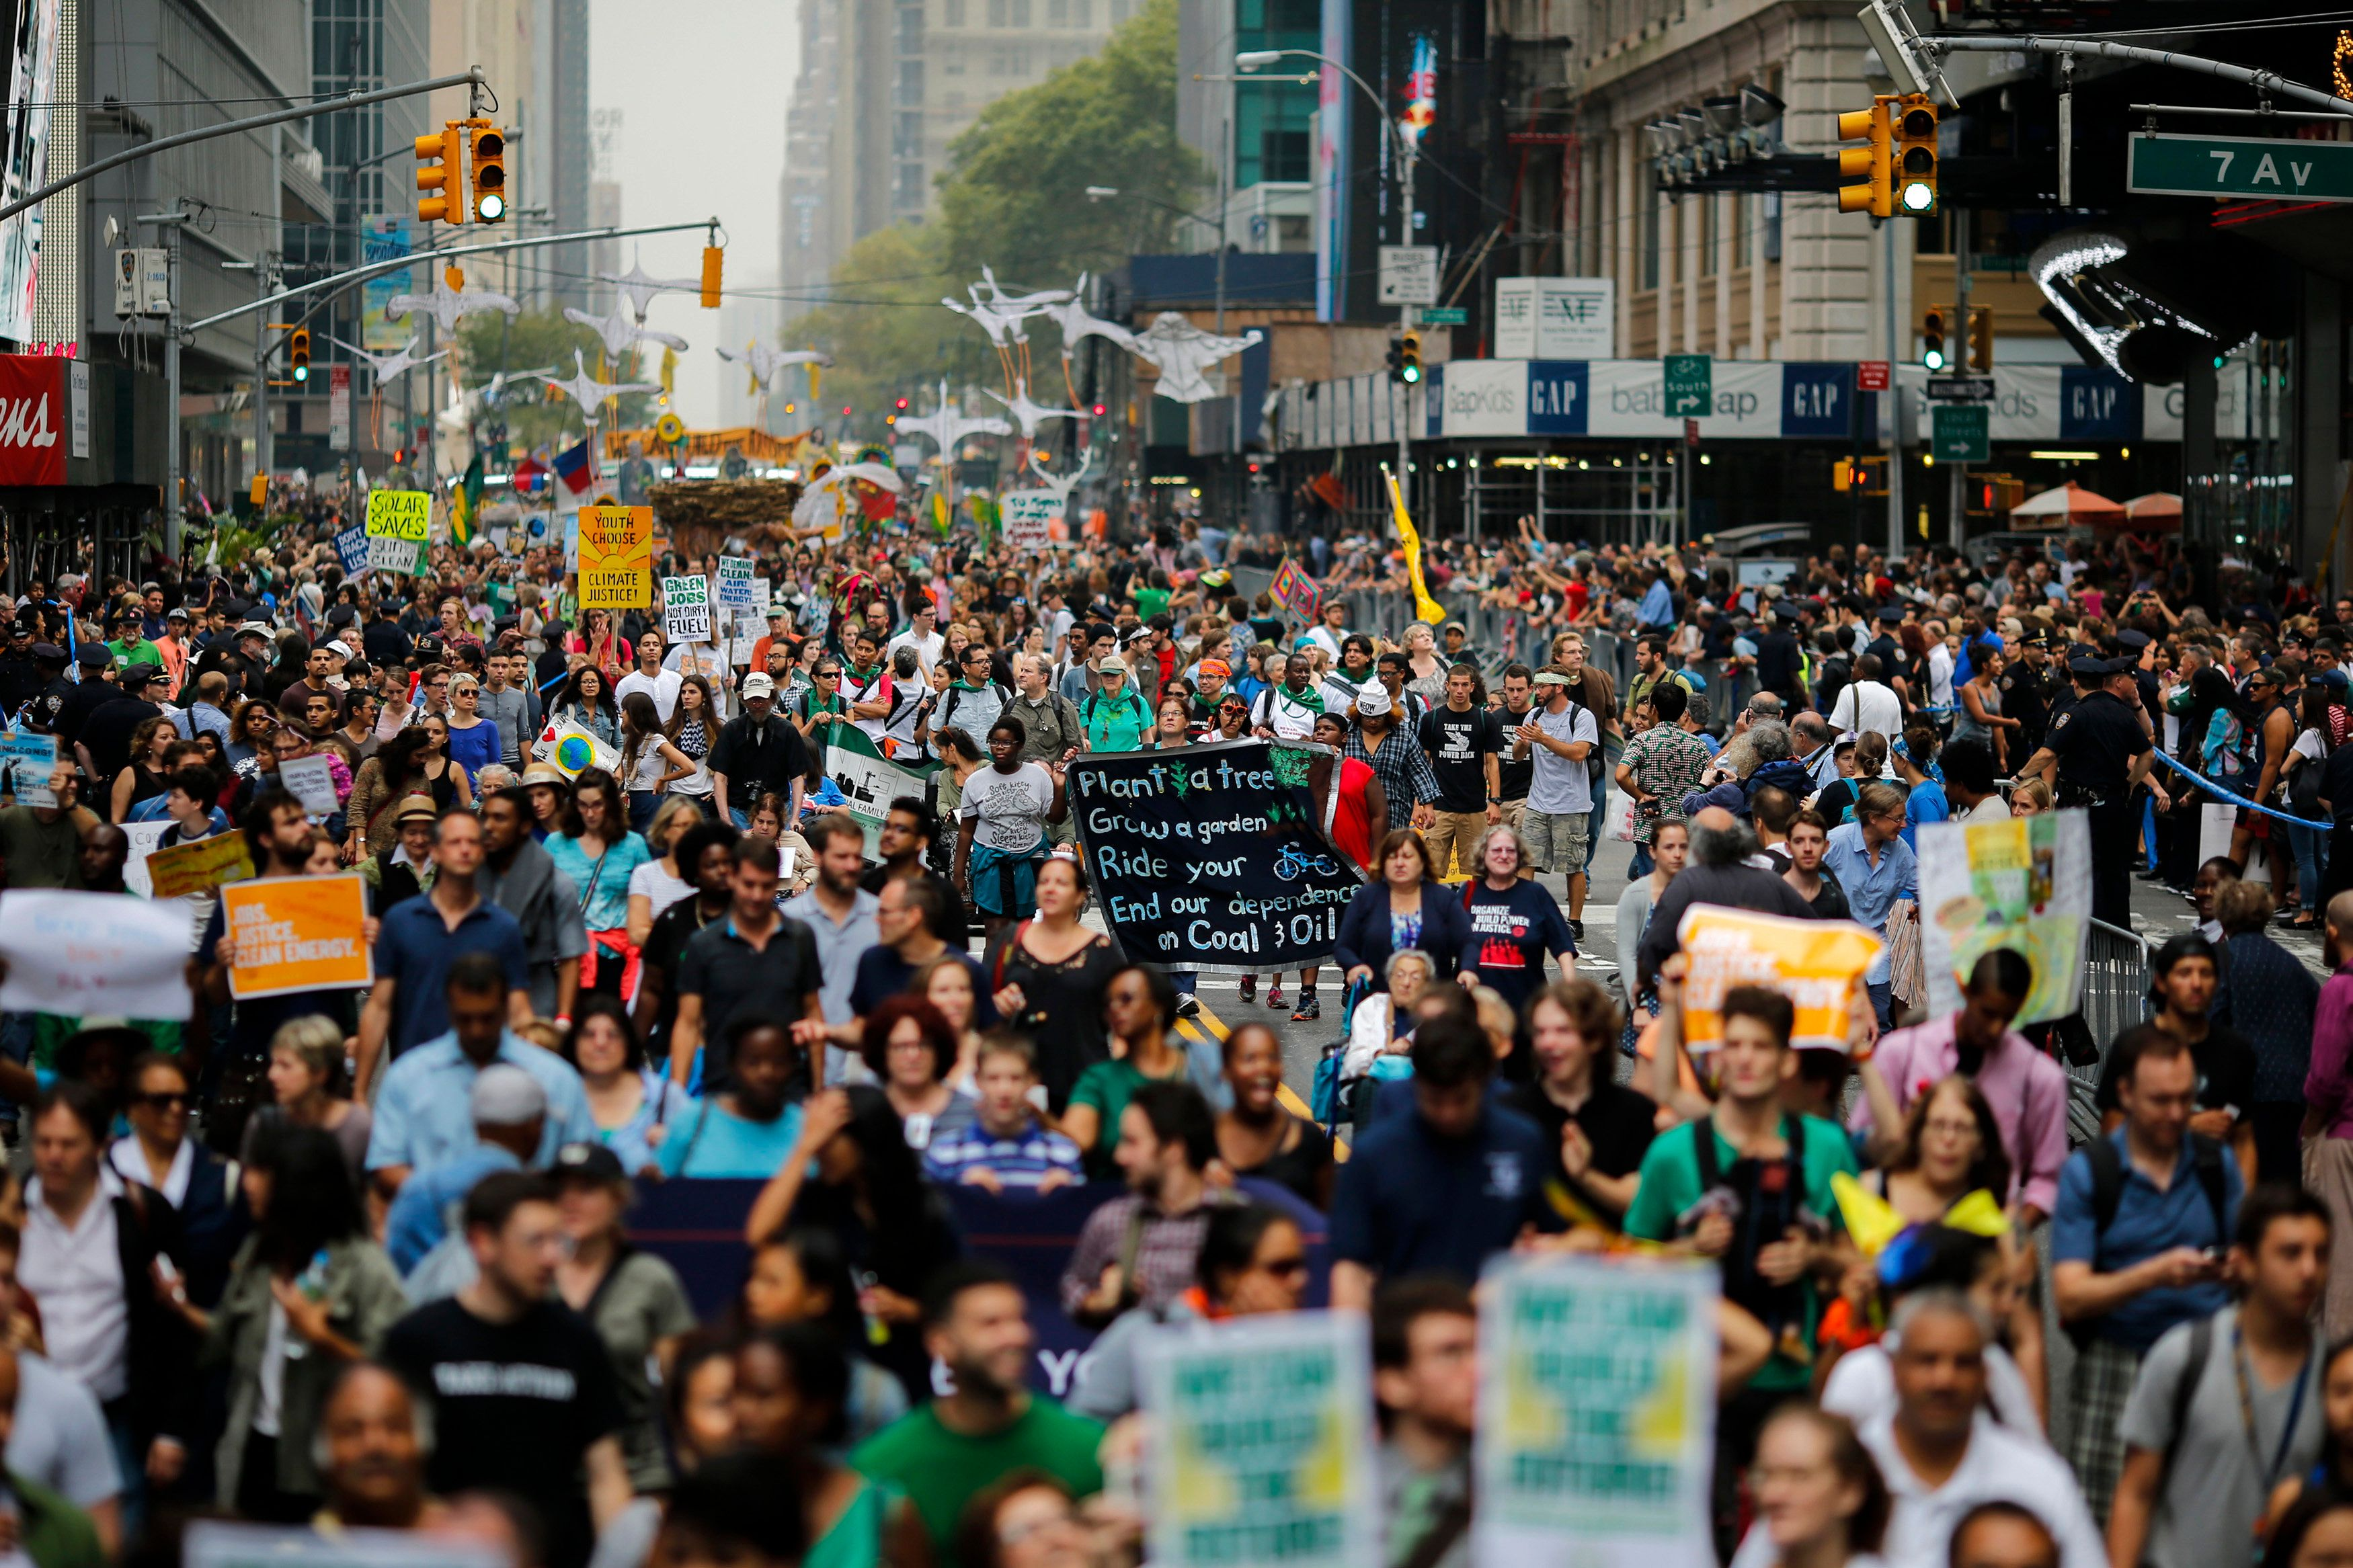 An estimated 400,000 people joined the 2014 People's Climate March in New York City.